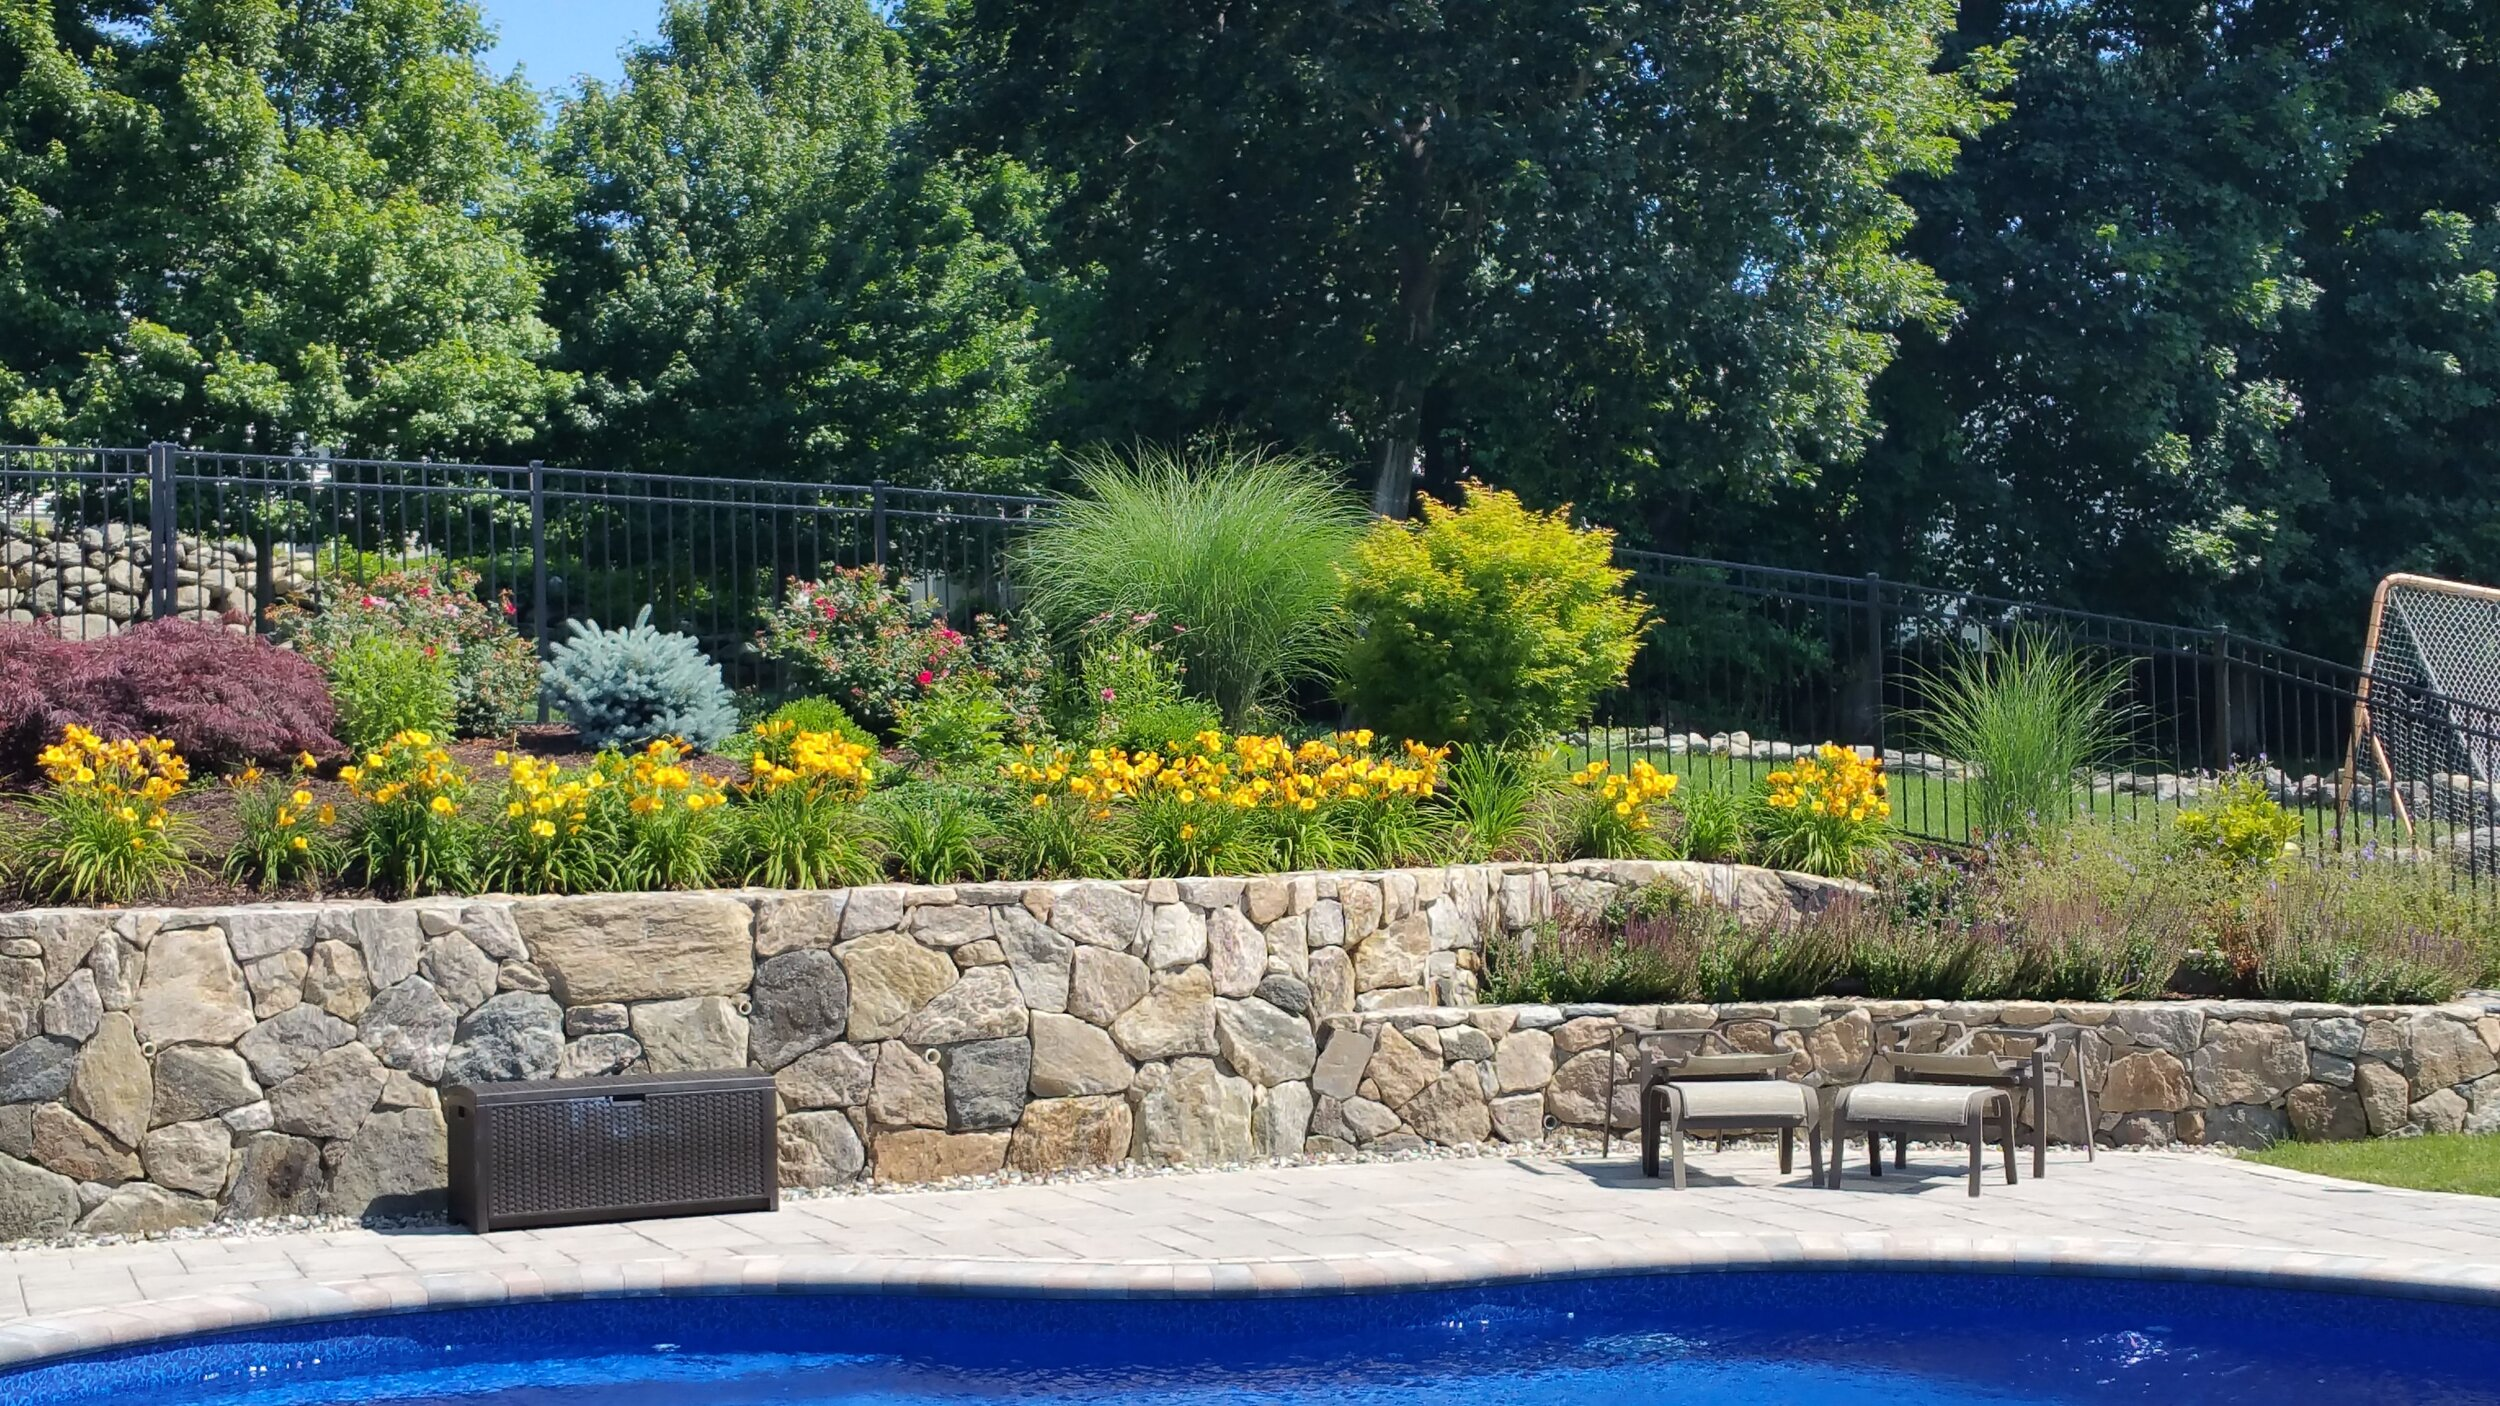 Landscape Design Ideas For Backyards With Natural Surroundings In Westchester County Ny Masonry Patio Lawn Care Westchester County Ny New York Irrigation Yorktown Ny